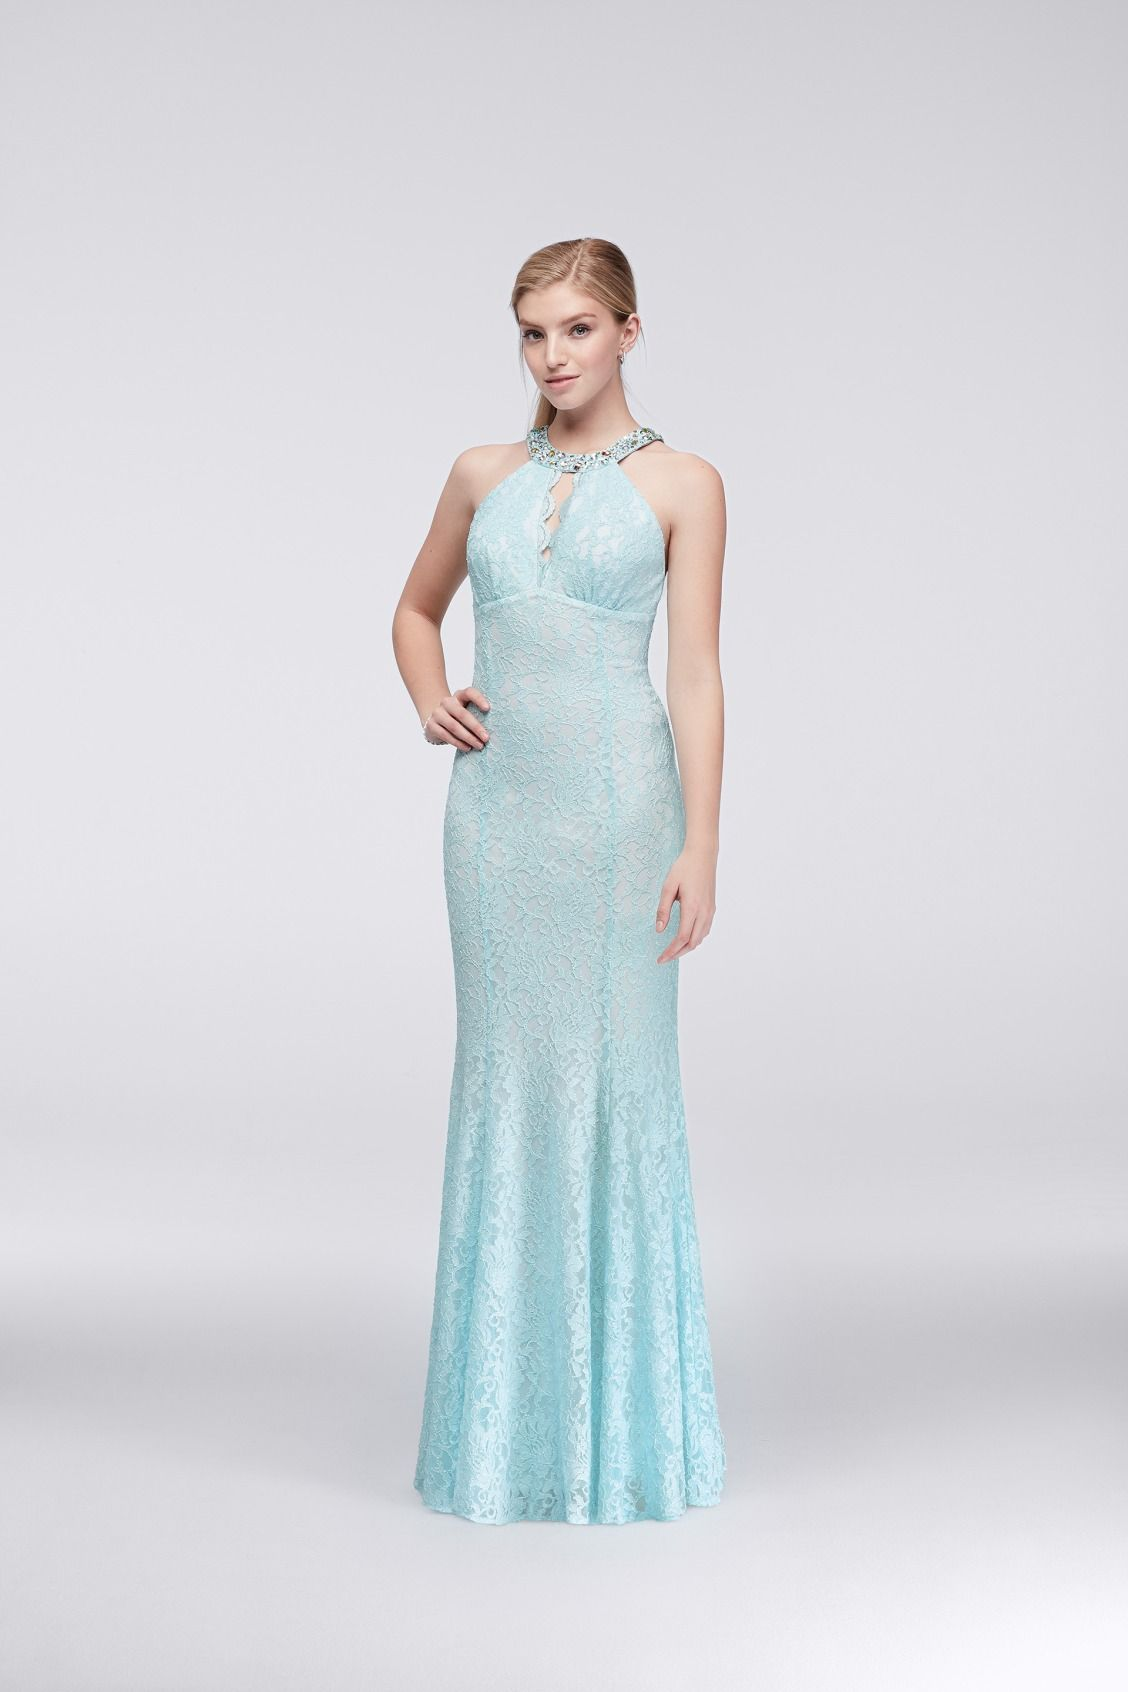 Aqua Lace Keyhole Mermaid Prom Dress with Jeweled Neckline from ...